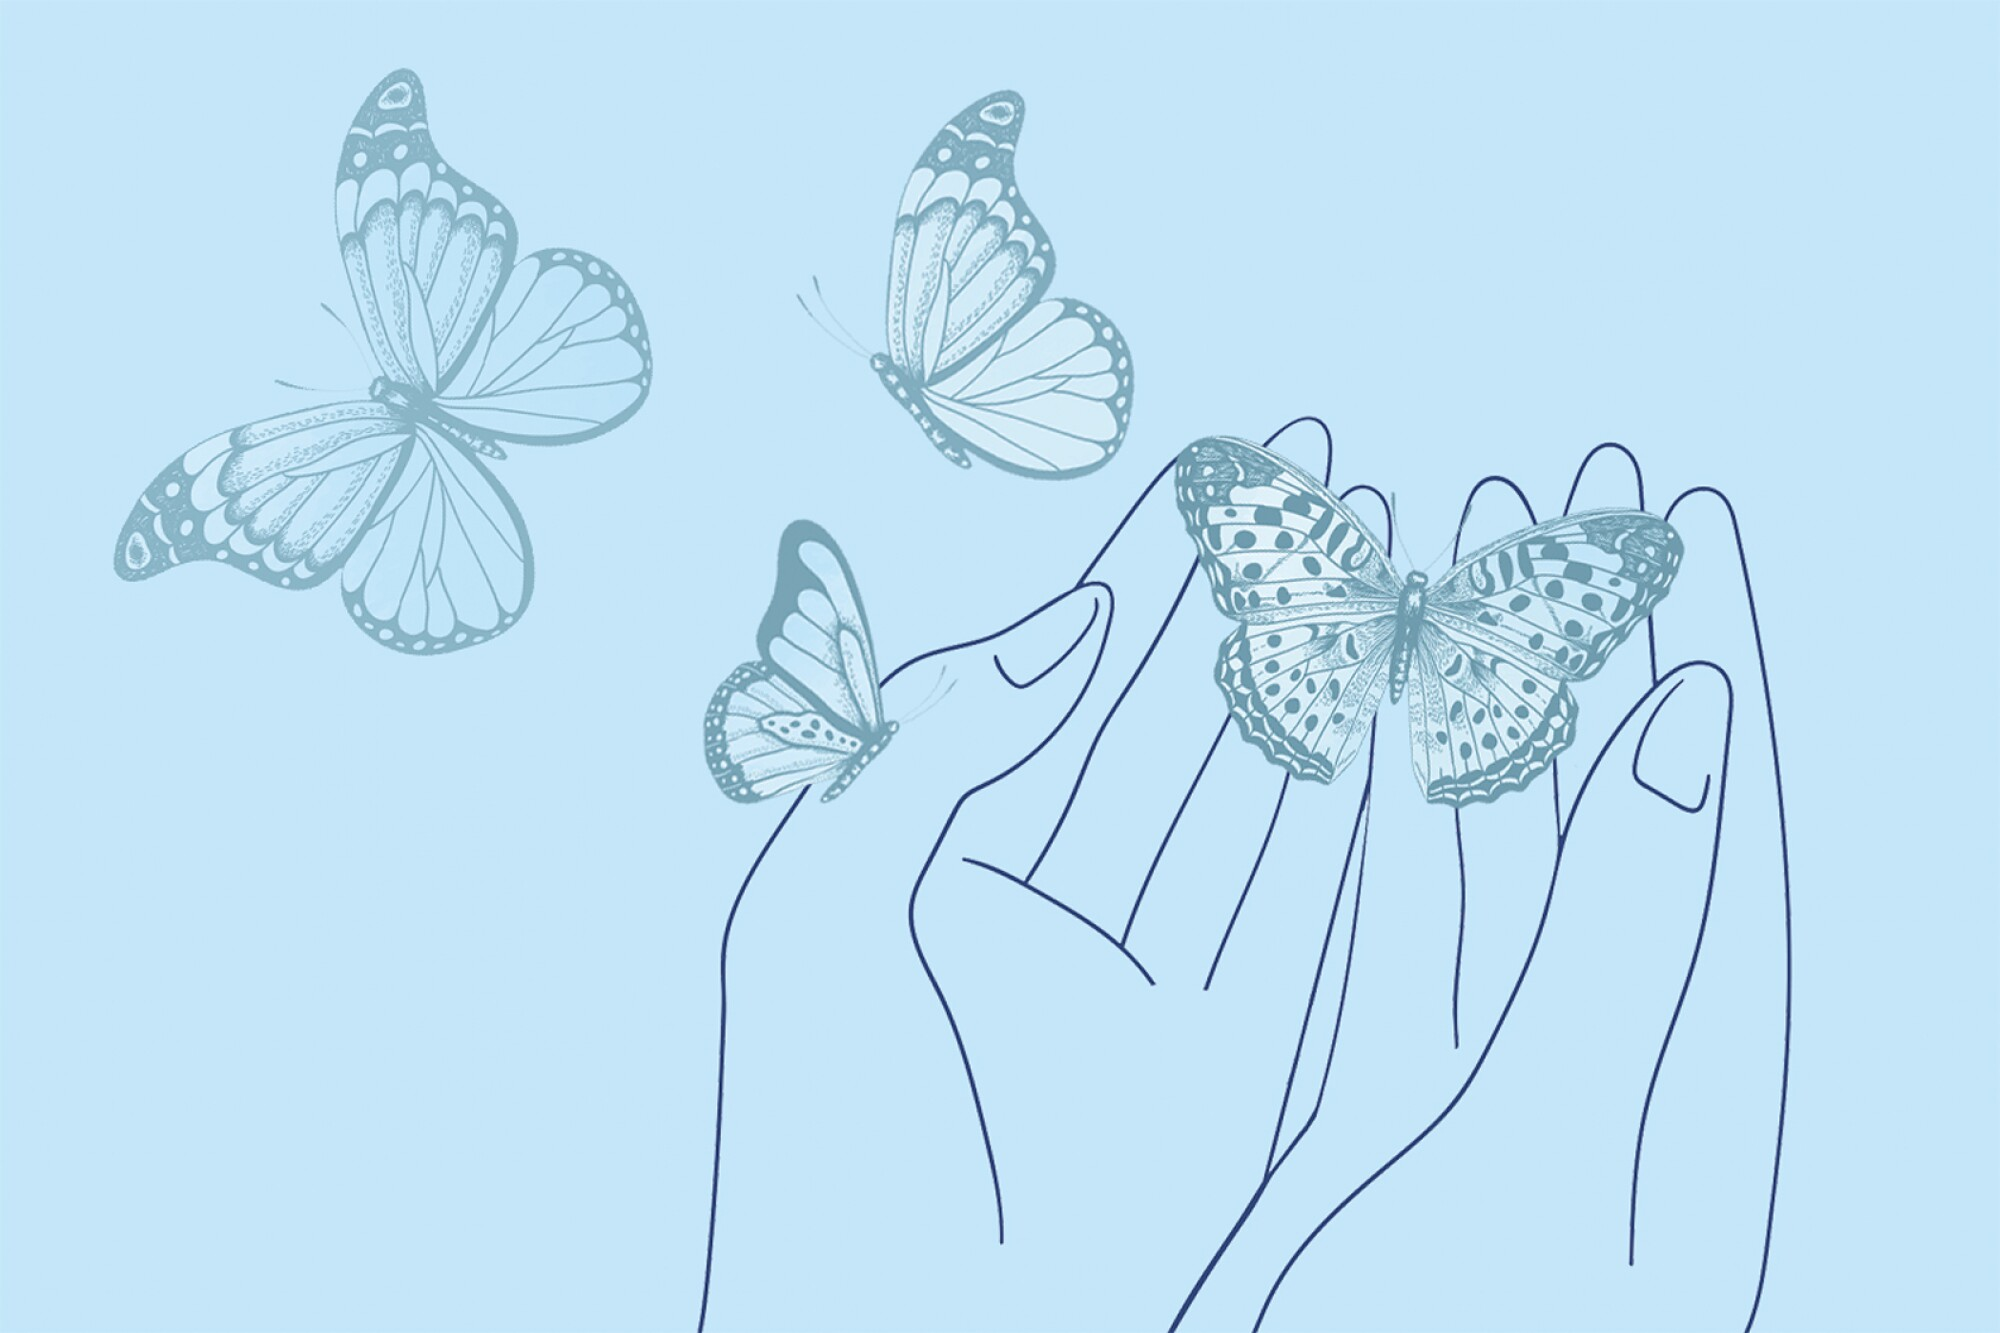 Drawing of butterflies leaving a hand.